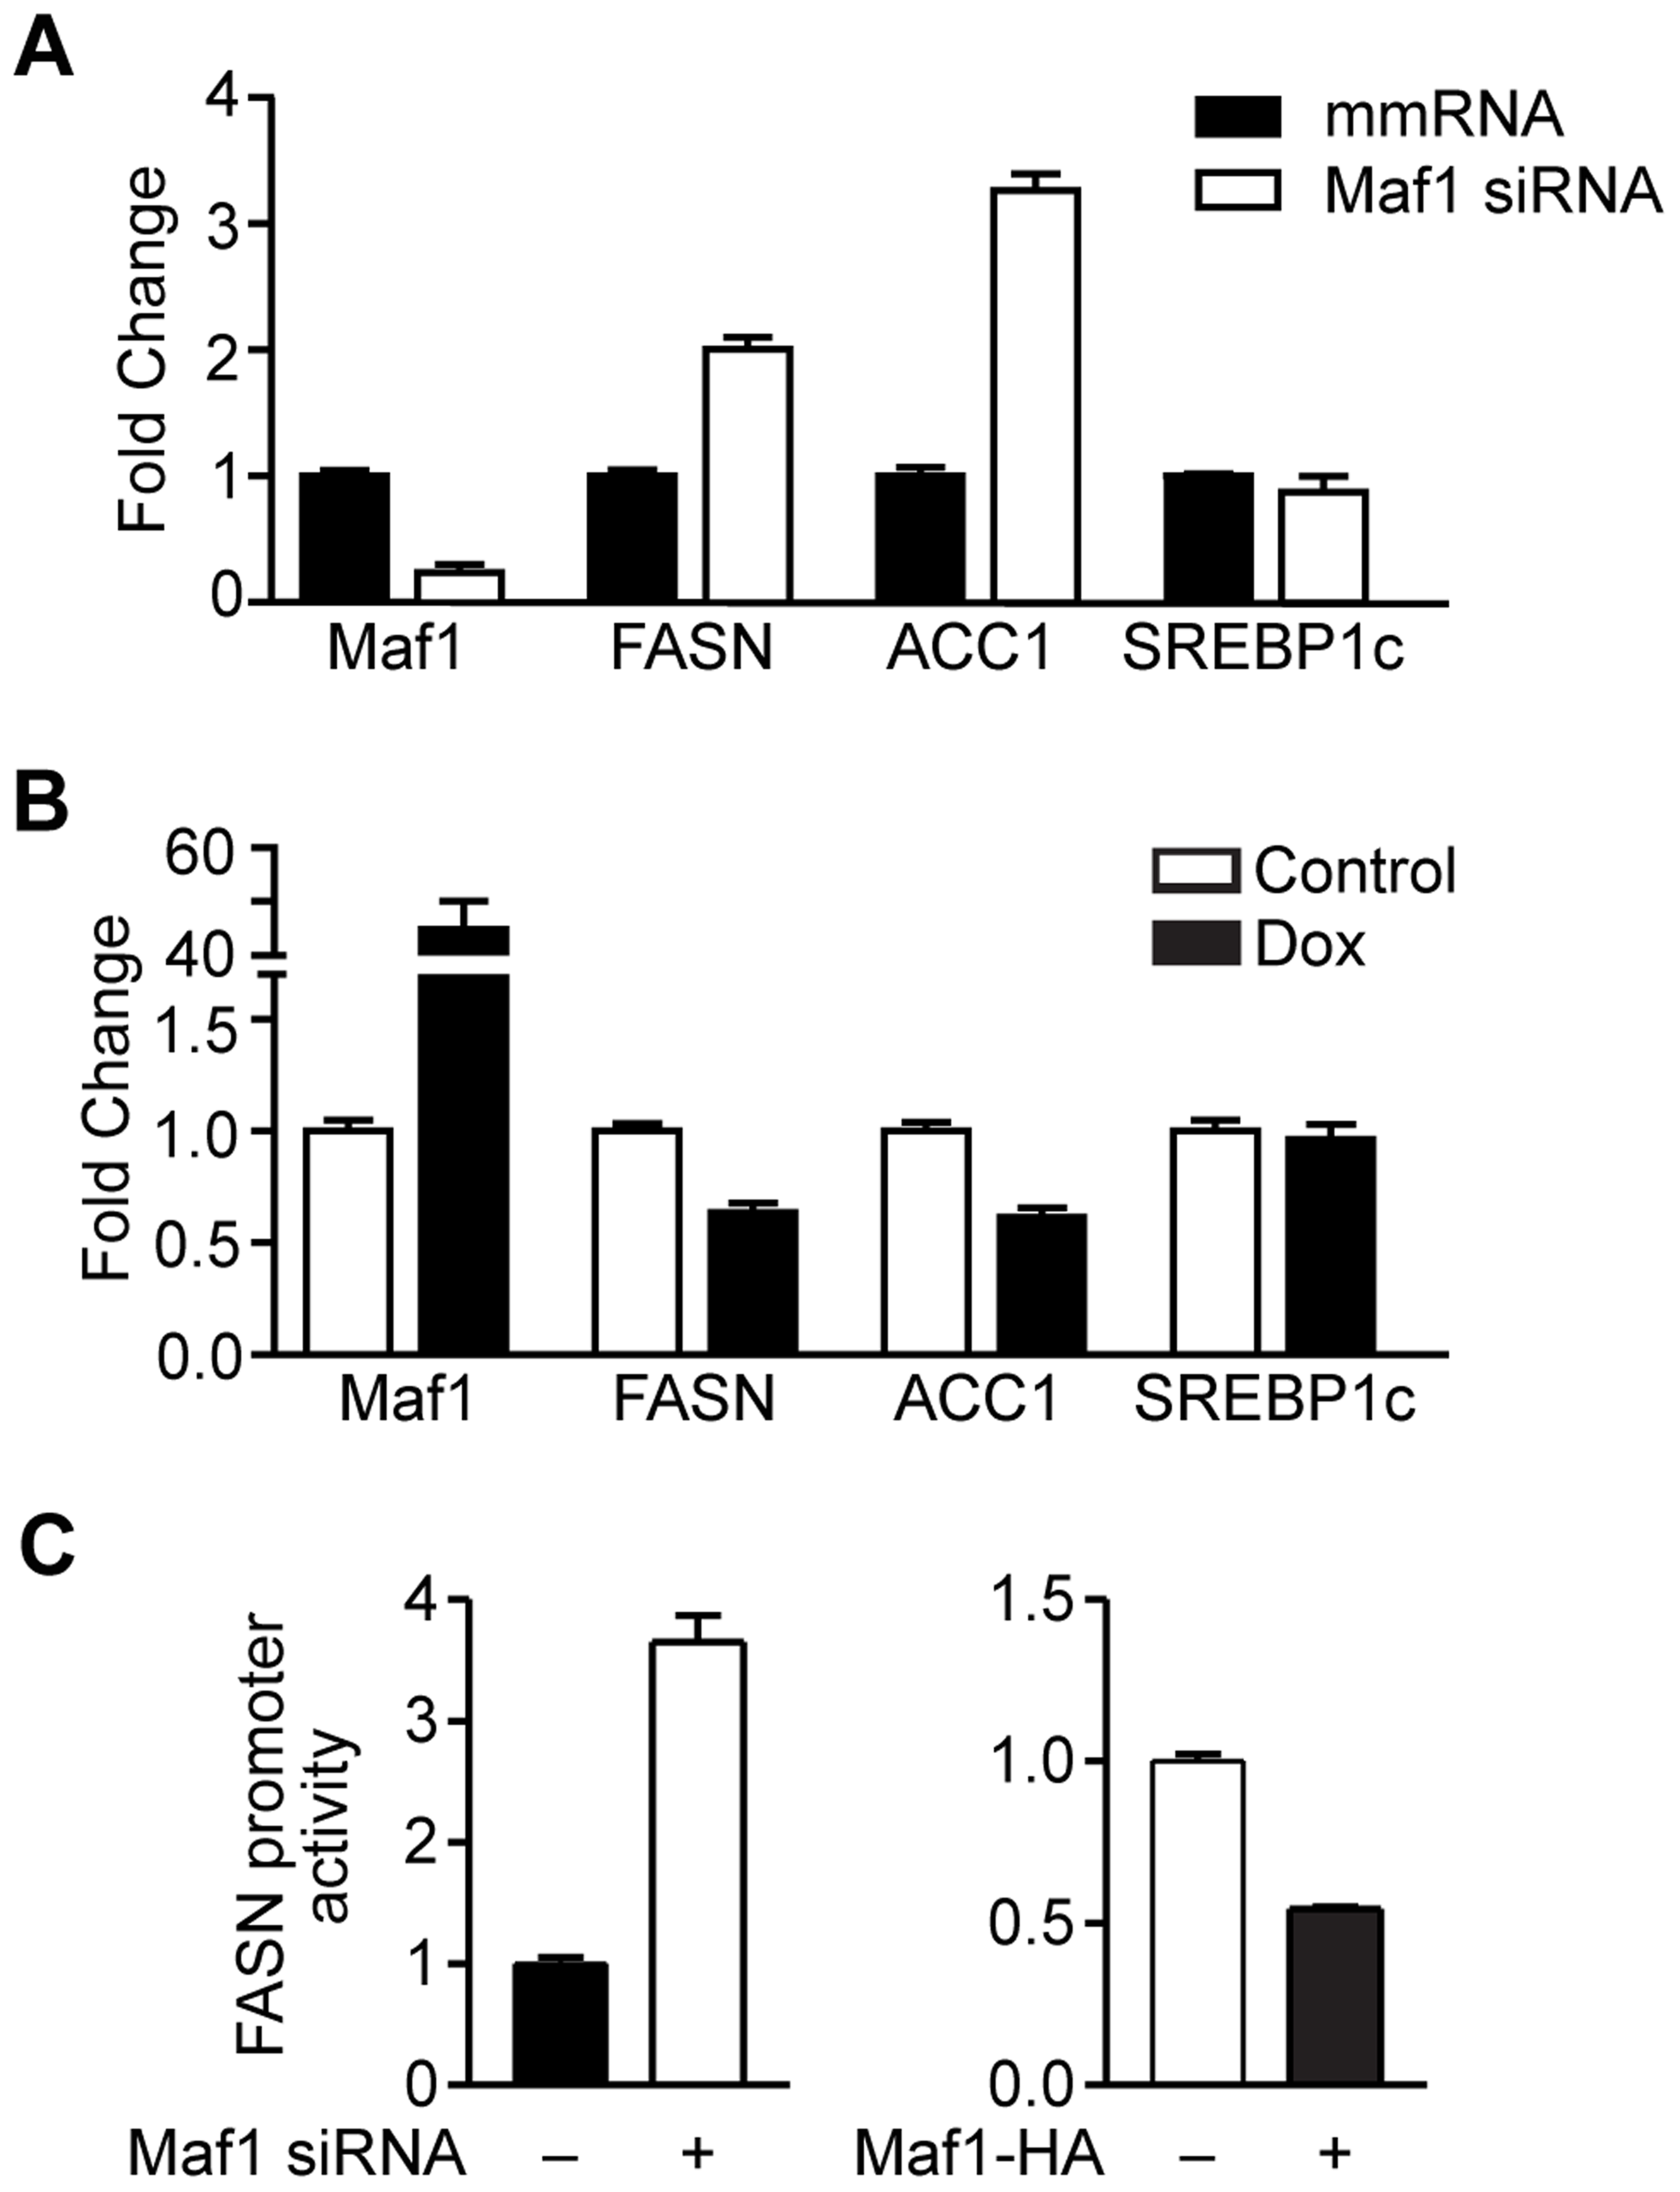 Maf1 negatively regulates fatty acid synthase (FASN) and acetyl-coA carboxylase (ACC1) expression.